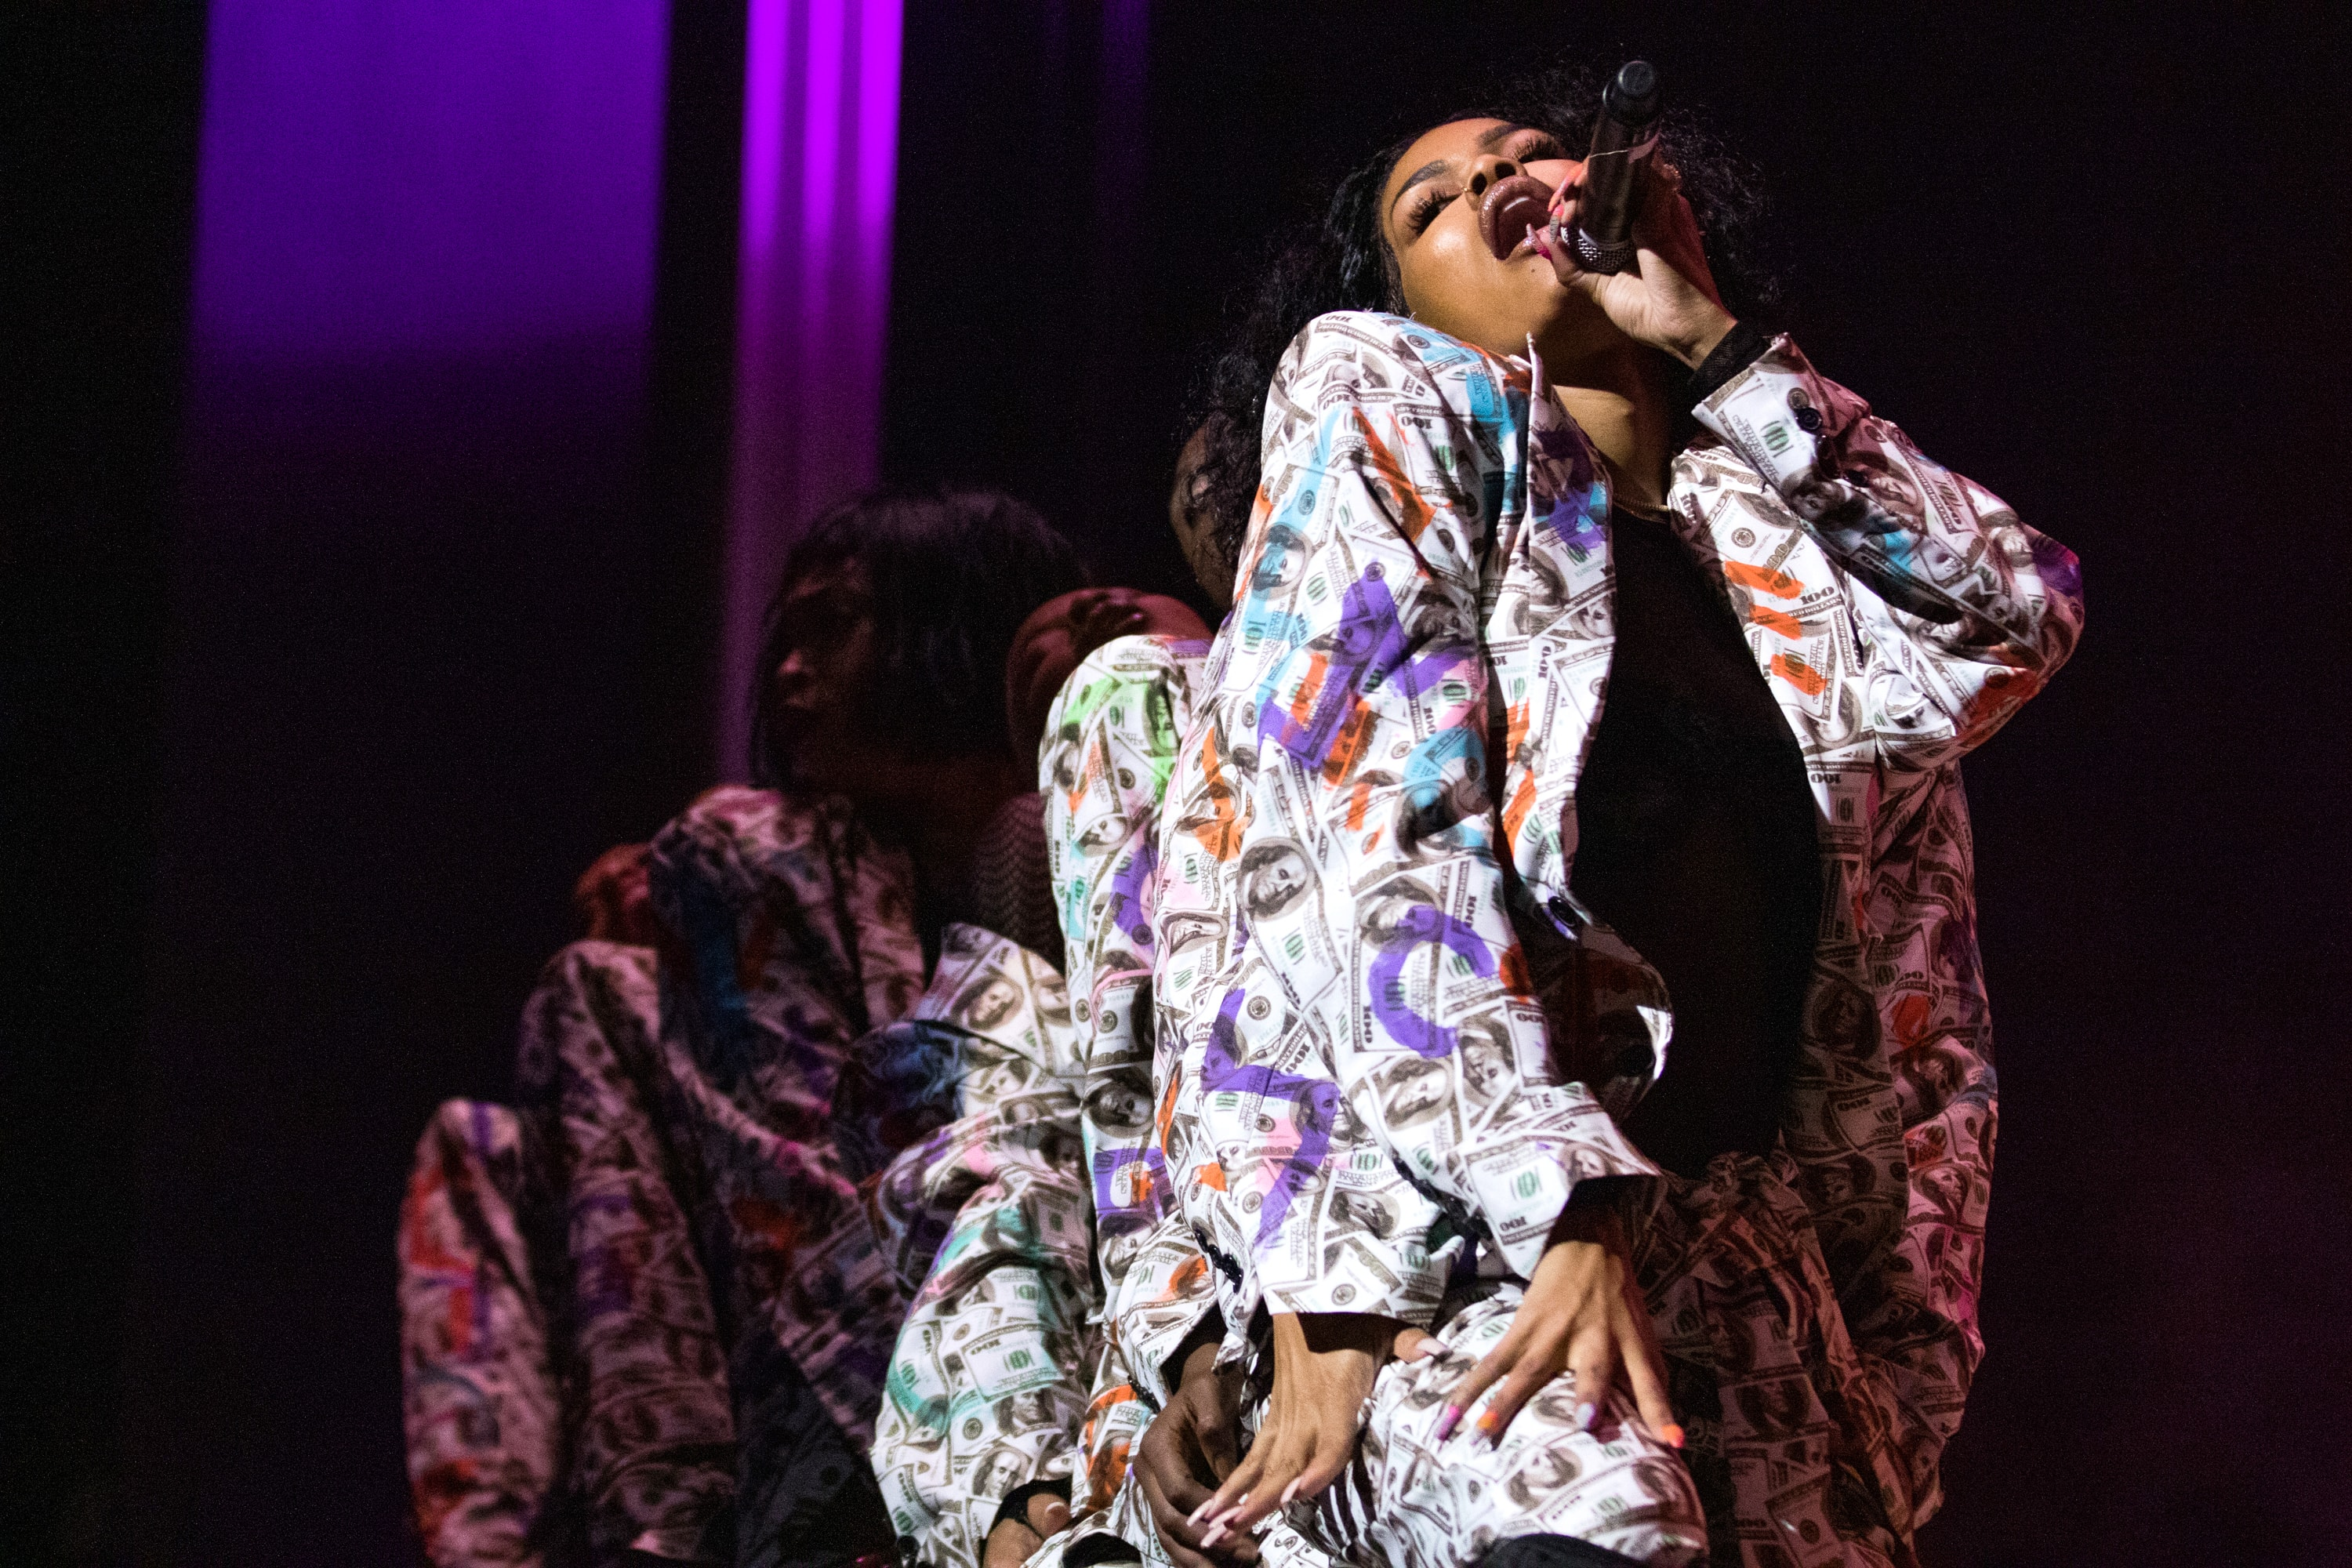 Teyana Taylor performs during Live Nation's